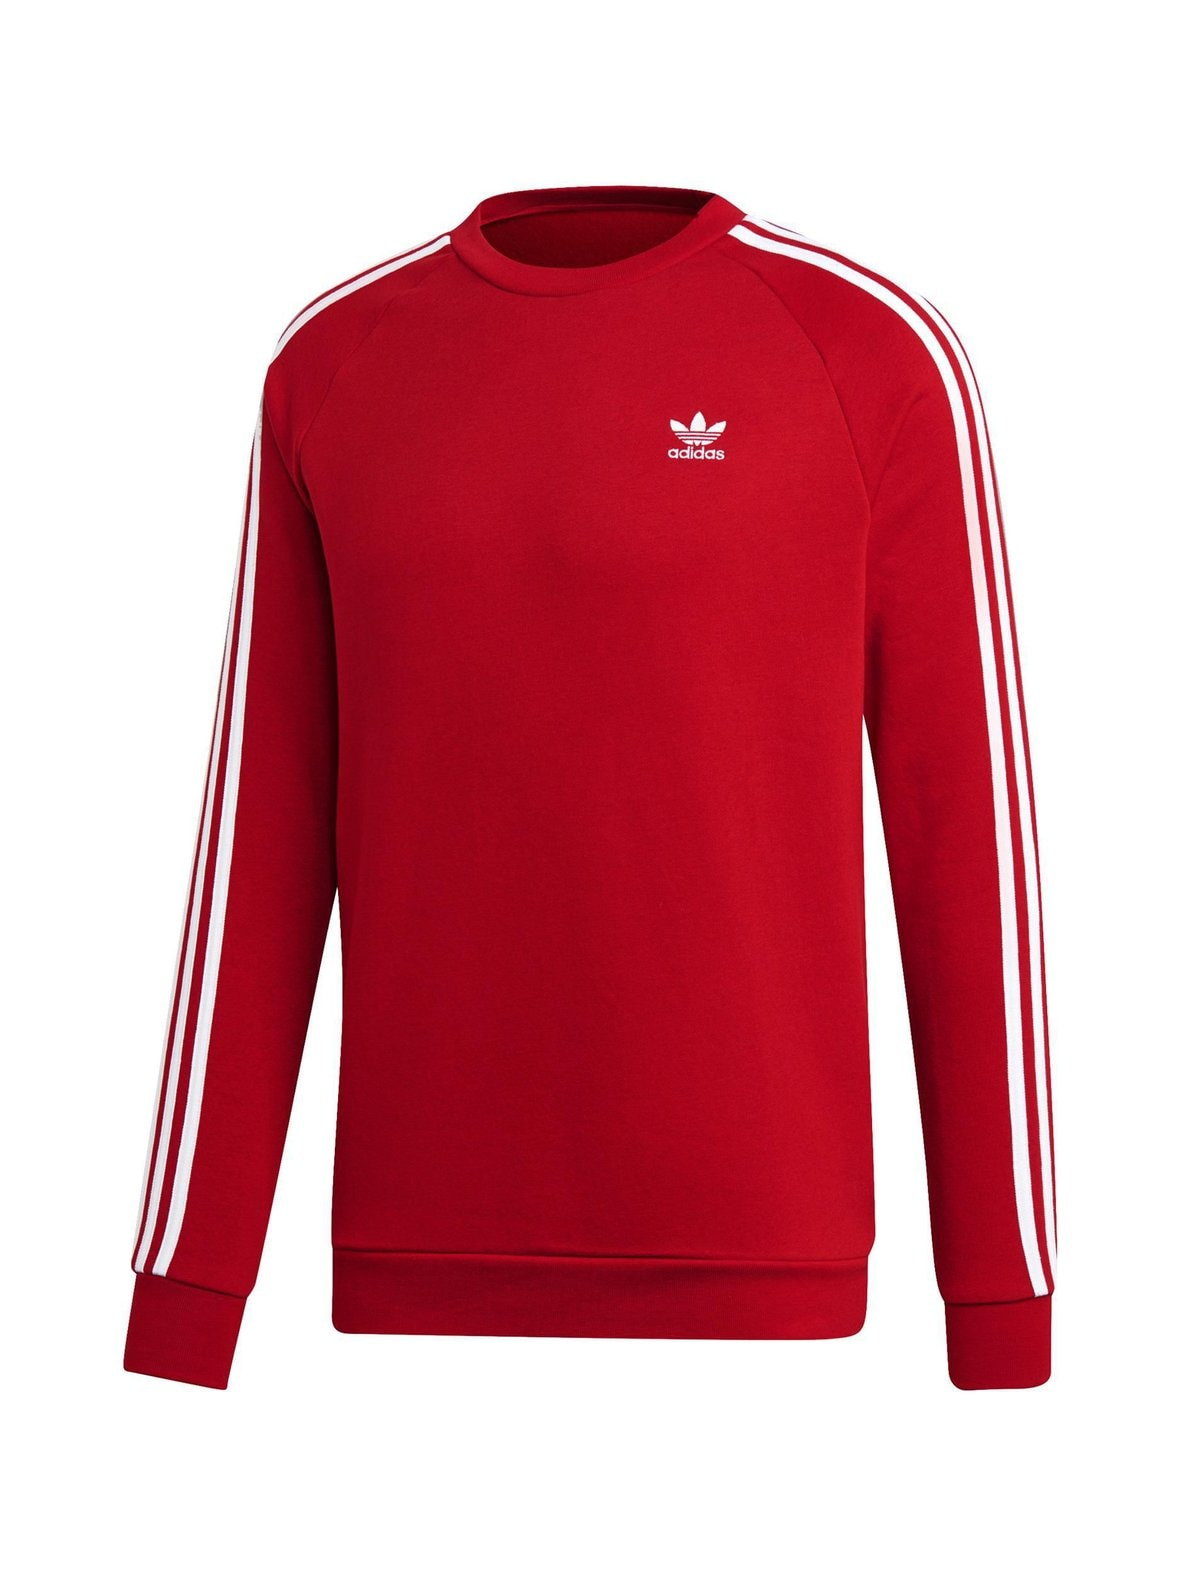 Powred (punainen) Adidas Originals 3-Stripes-collegepaita  54725f5d00